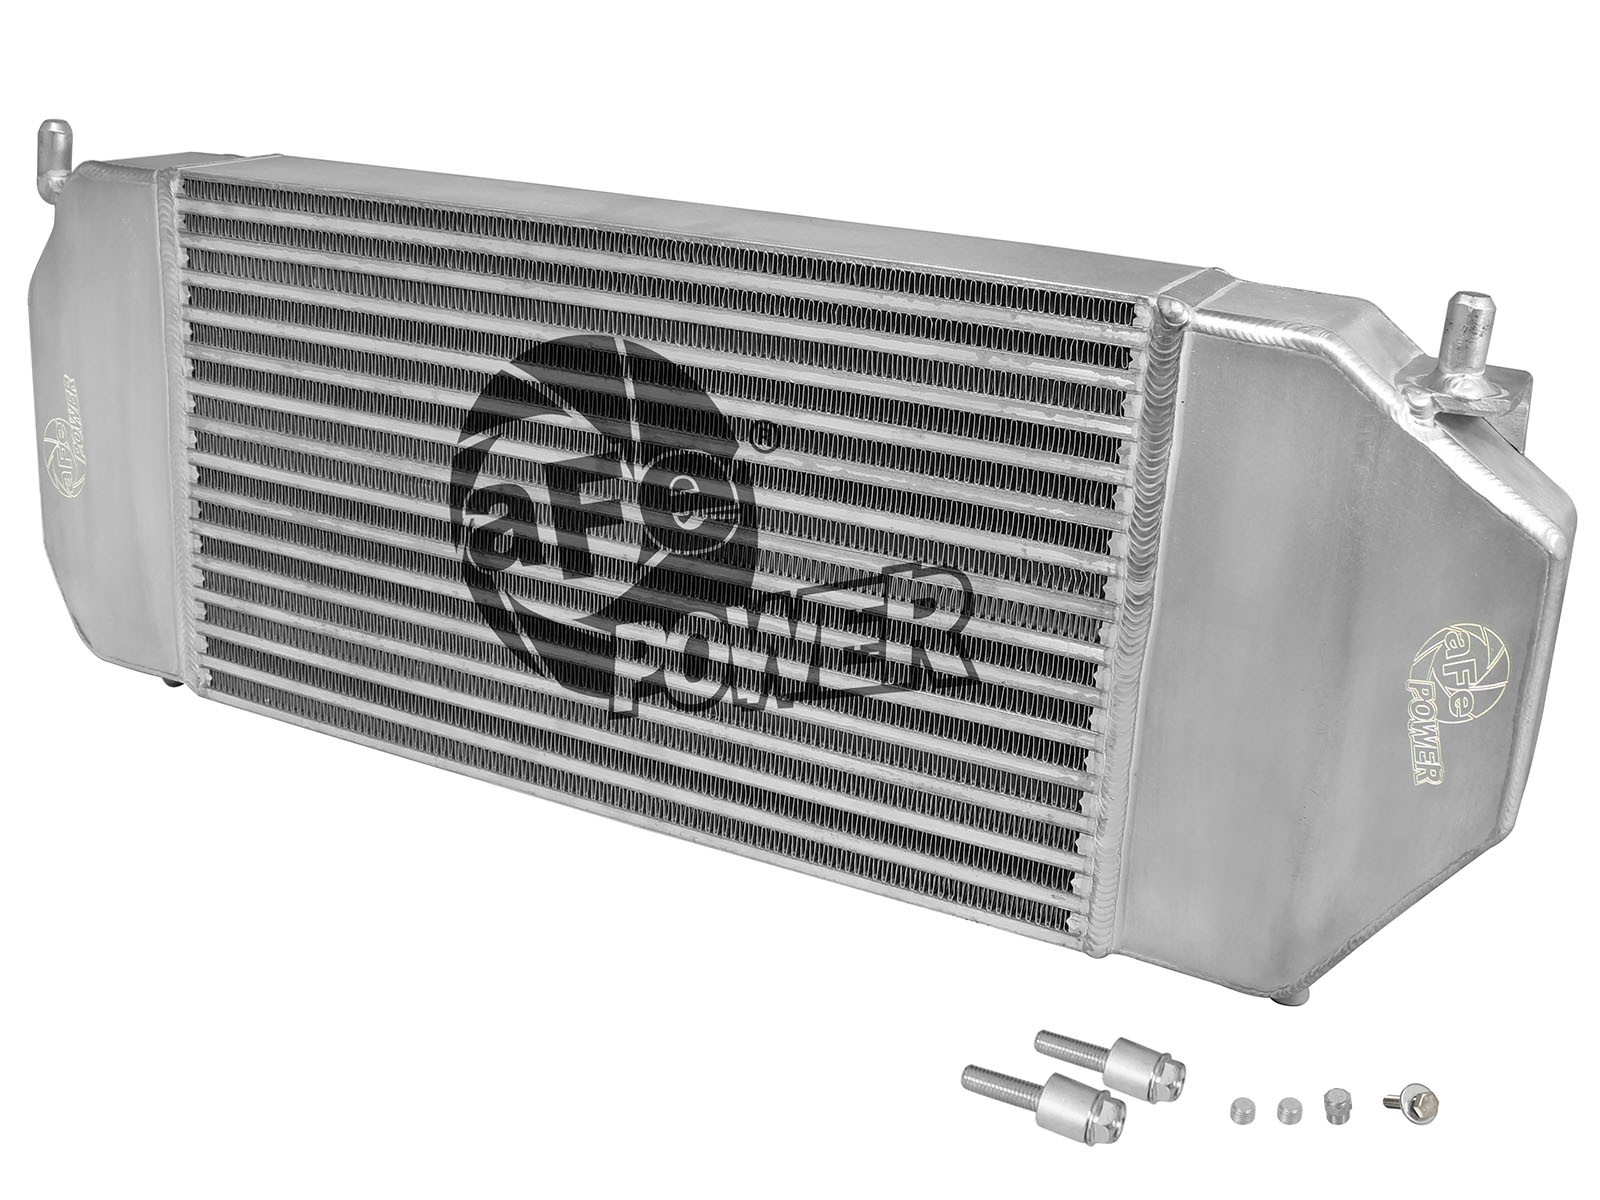 aFe POWER 46-20201 BladeRunner GT Series Intercooler